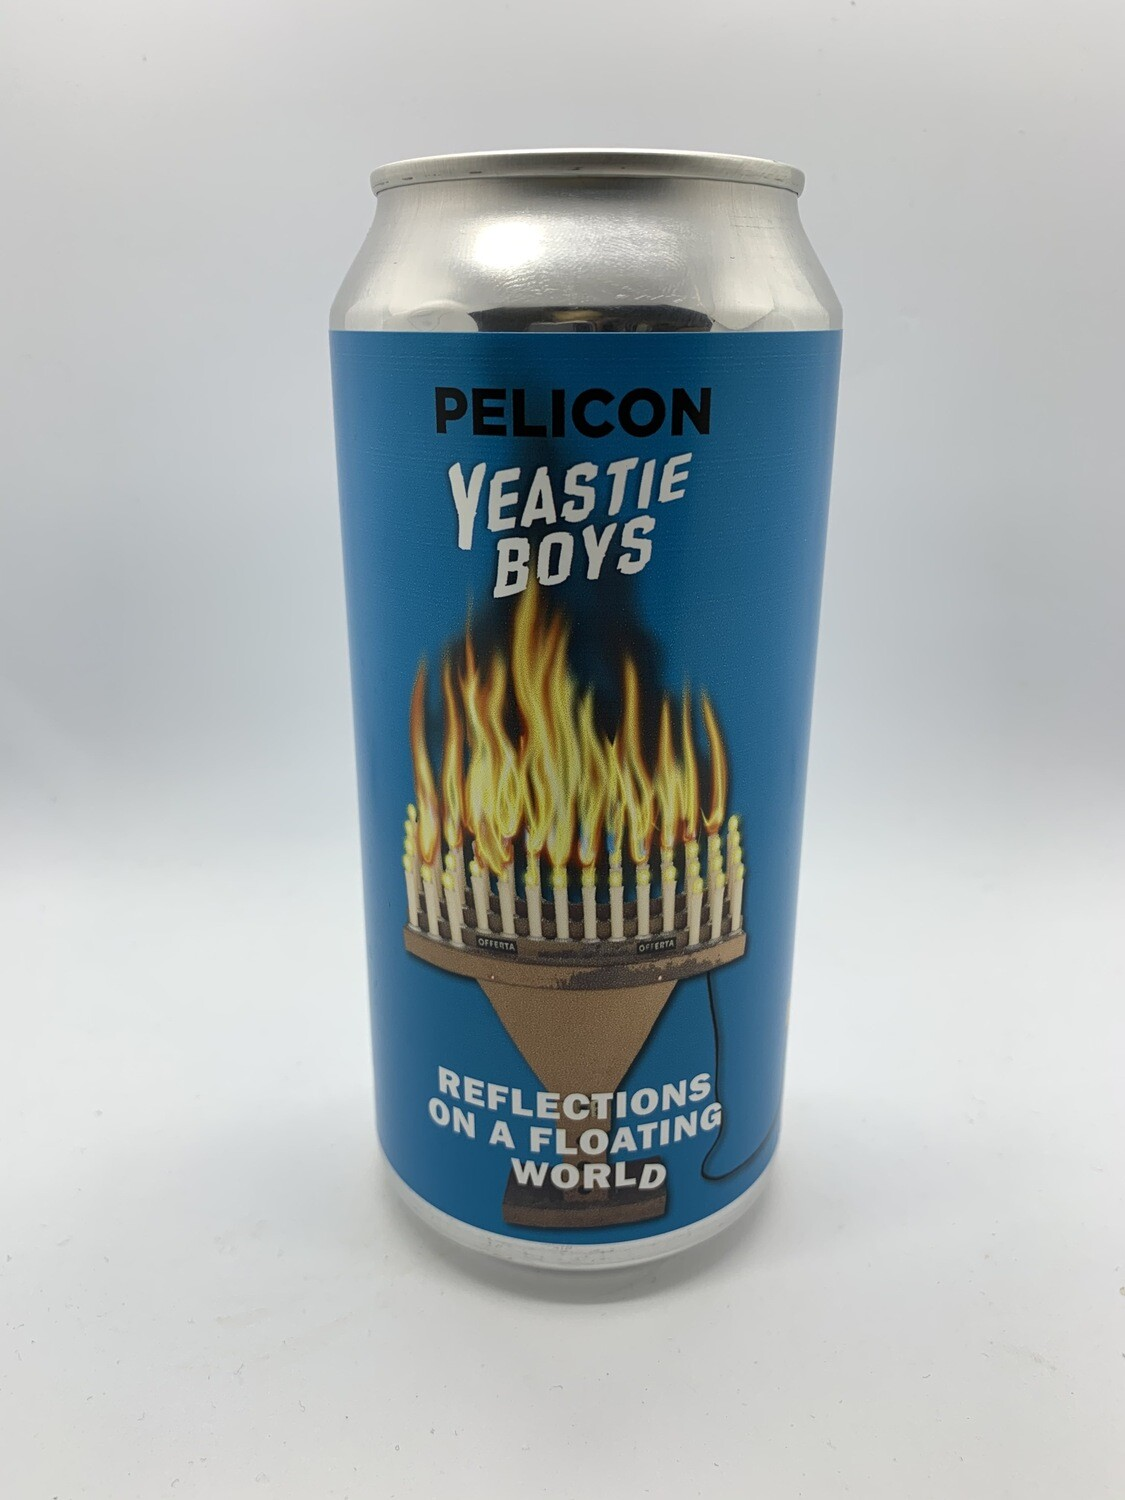 Yeastie Boys - Reflections on a Floating World